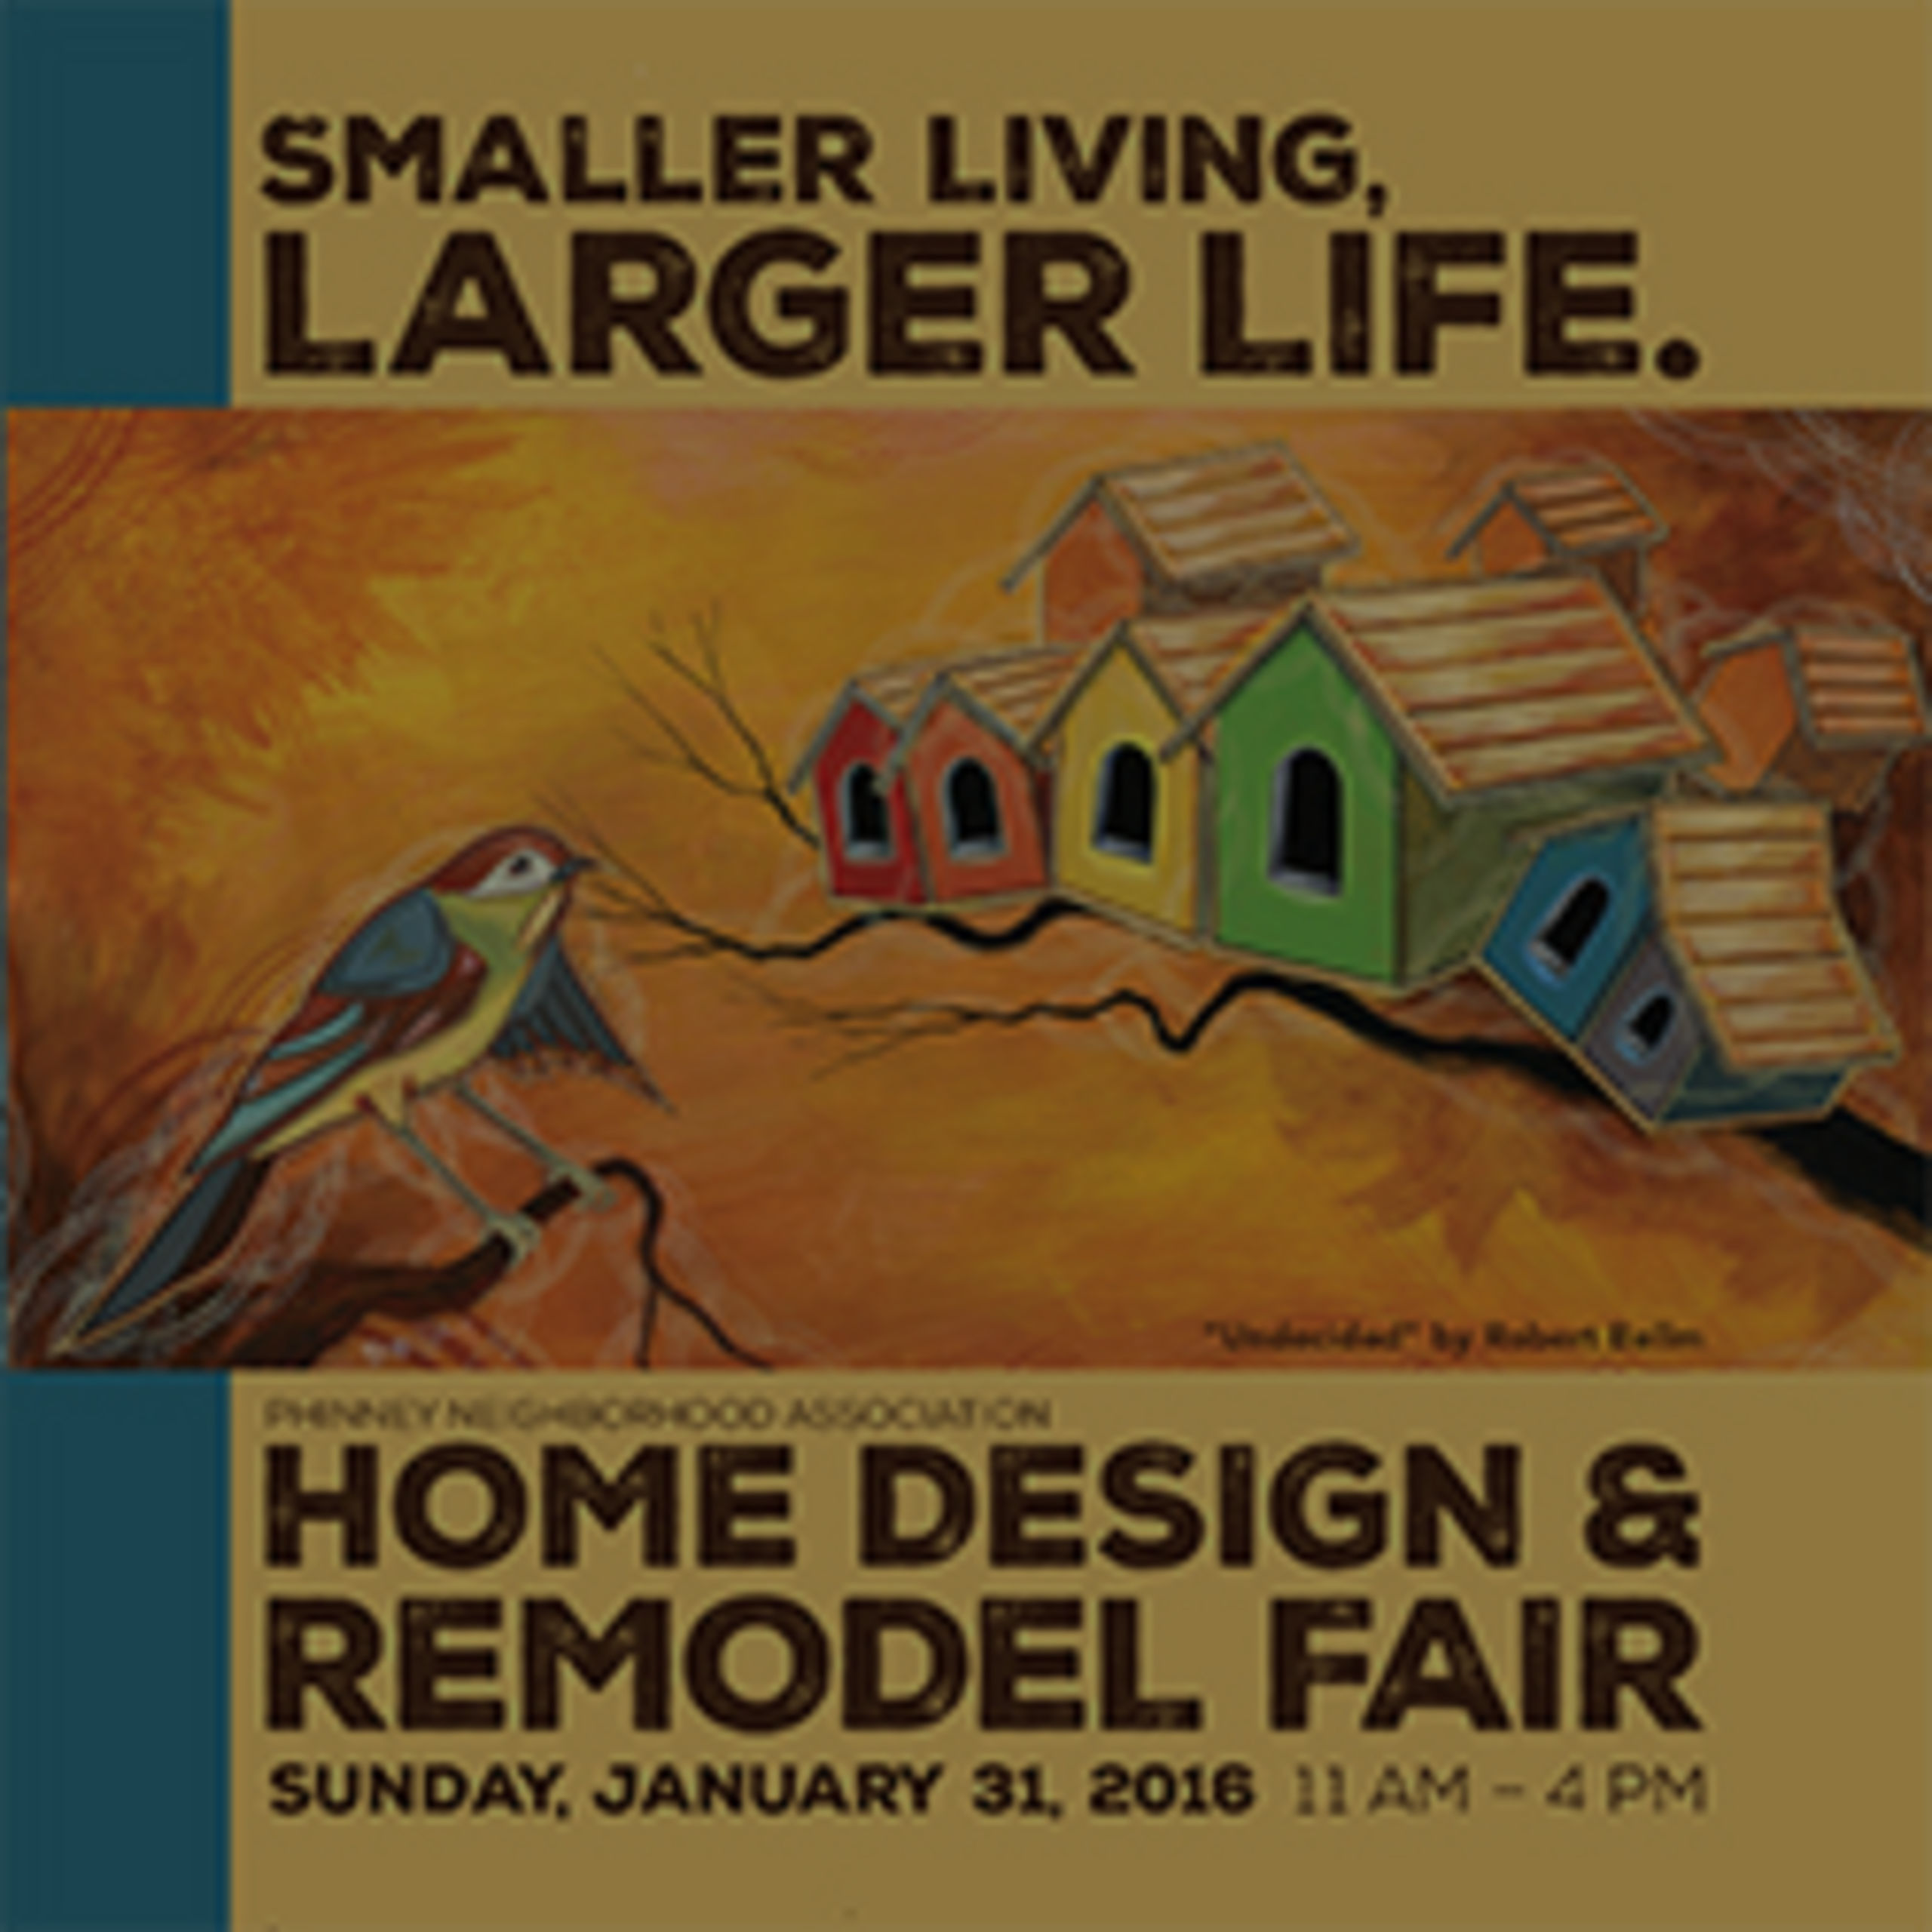 PNA Home Design and Remodel Fair